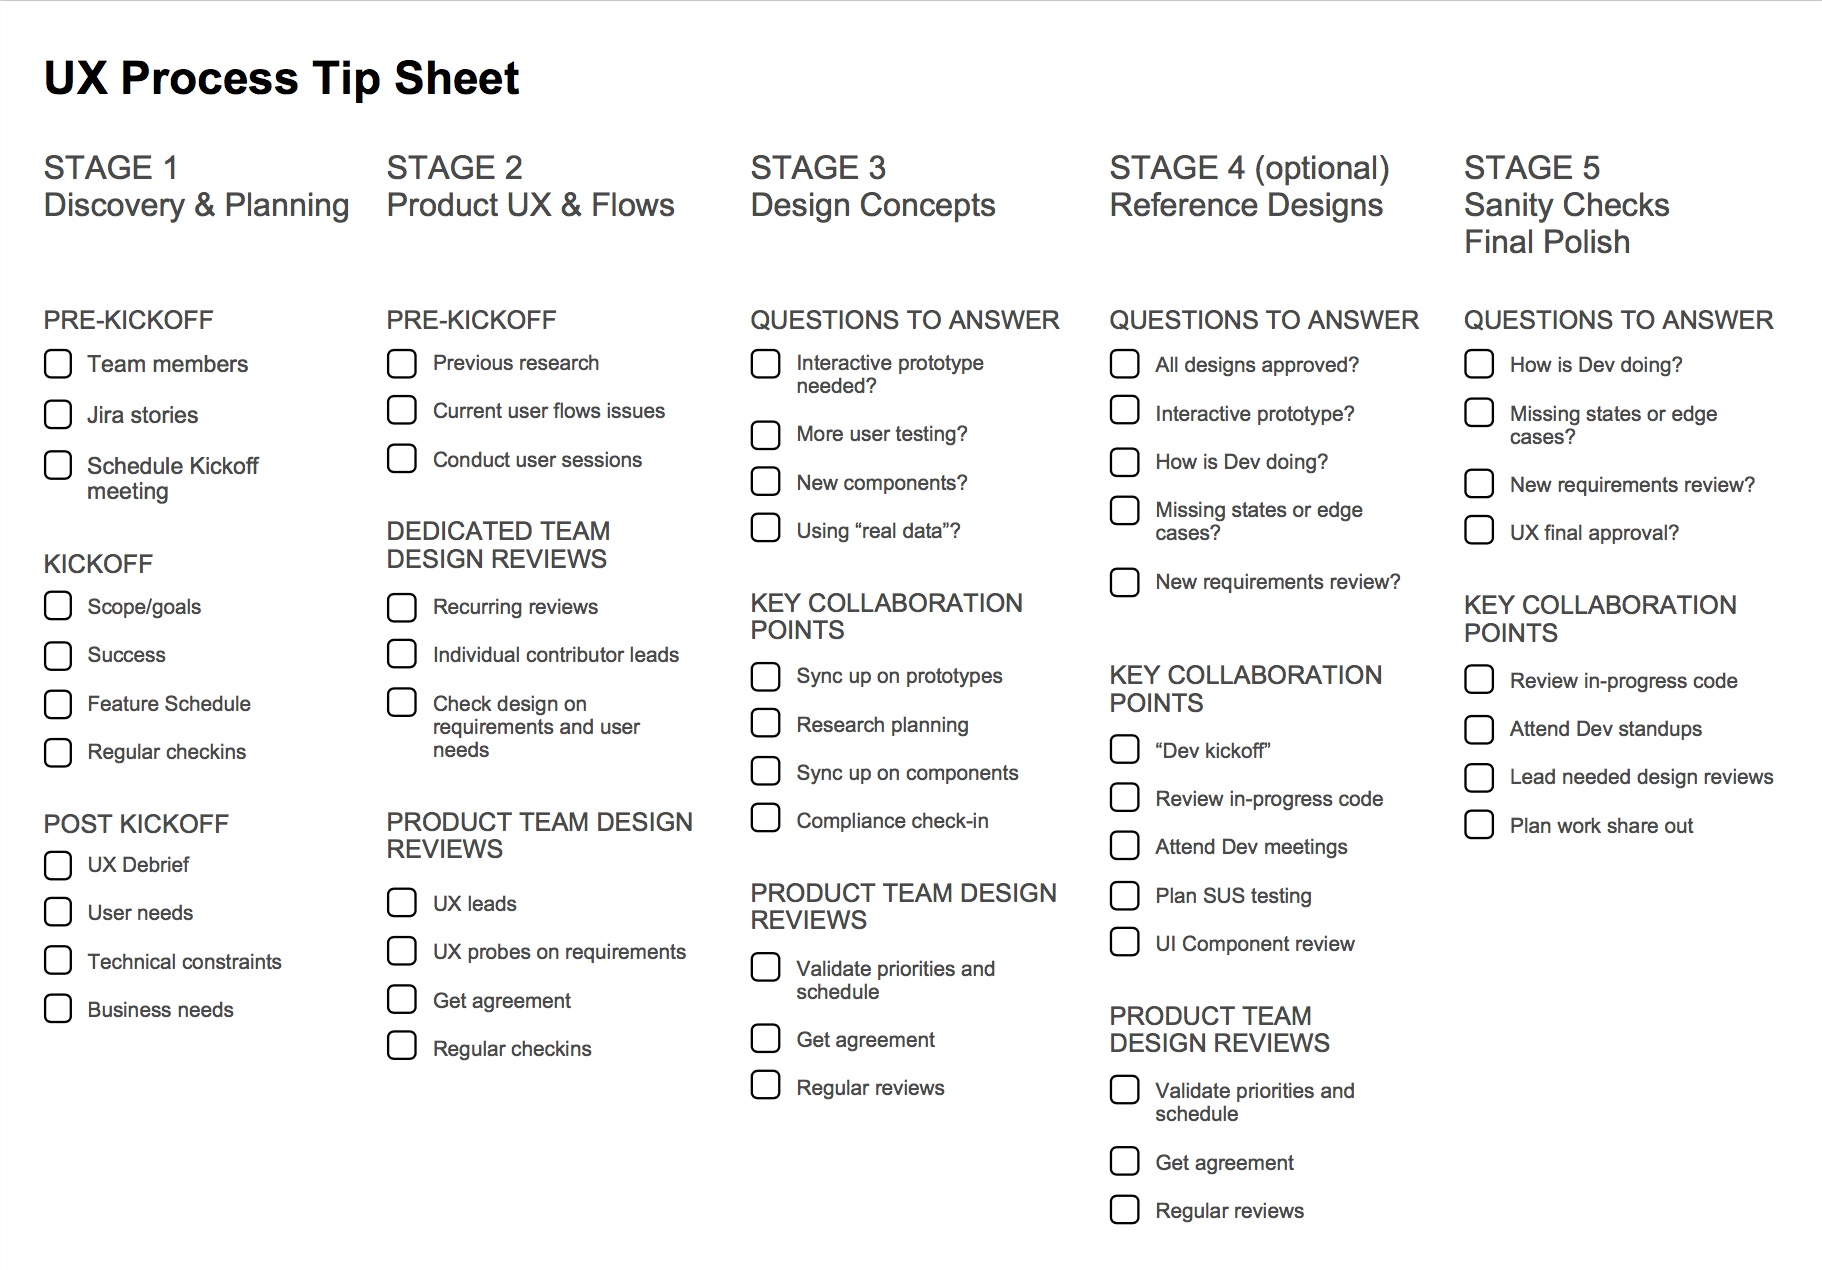 IMAGE: UX Process Tip sheet that simplified the large wall-size service blueprint into a cubicle-sized checklist.